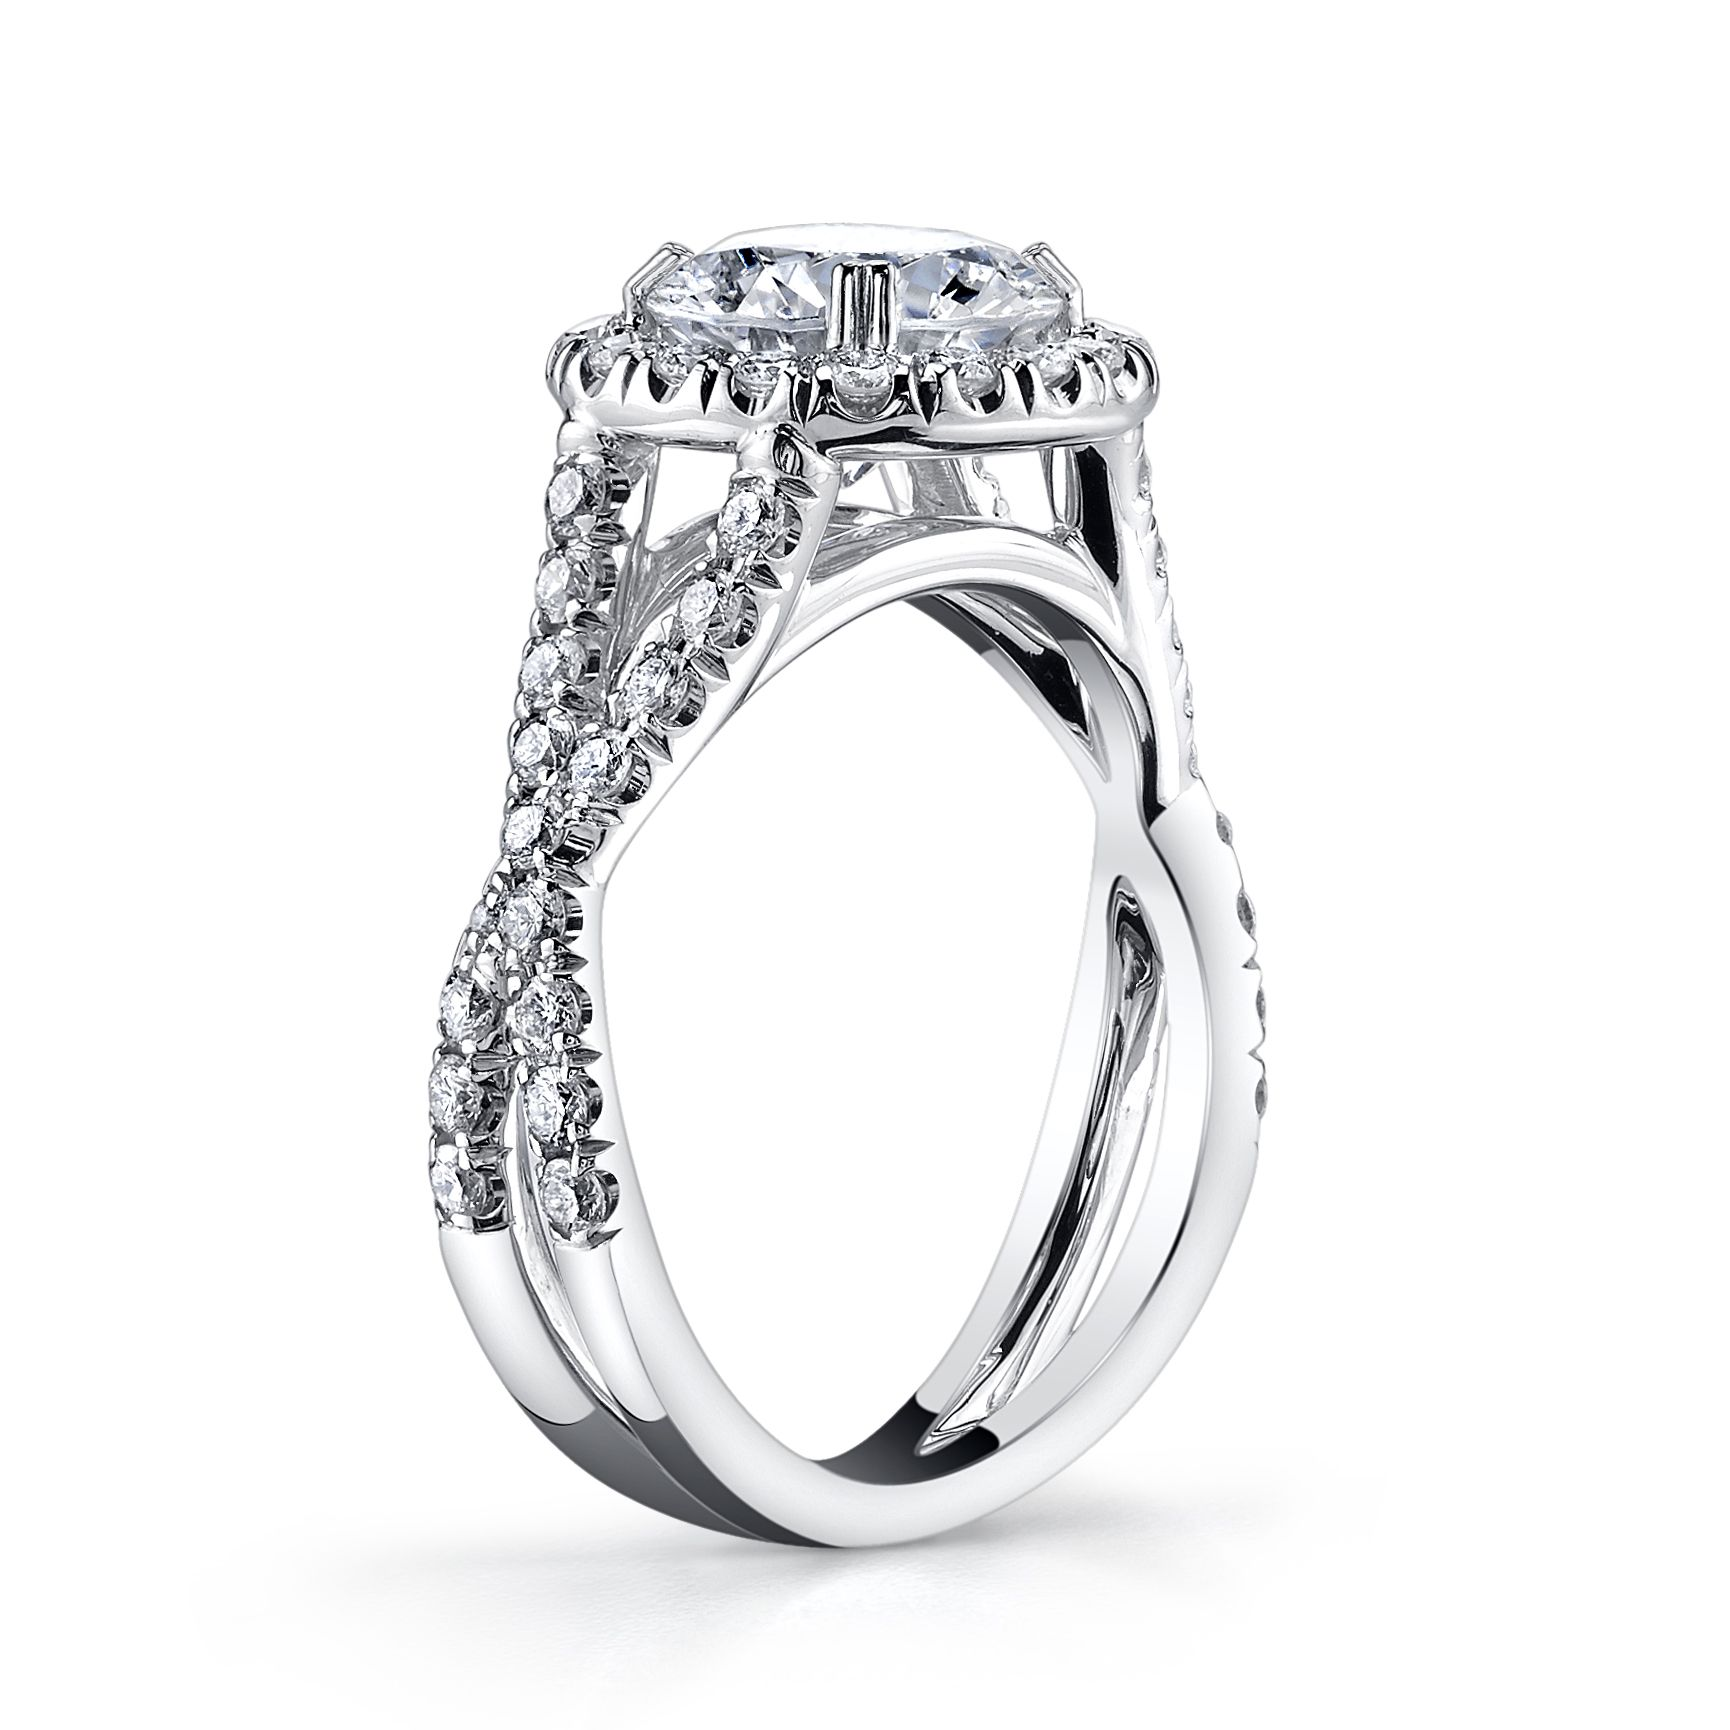 Twisted Micro Pave Shank Halo Engagement Ring Jewelers In Poughkeepsie Ny